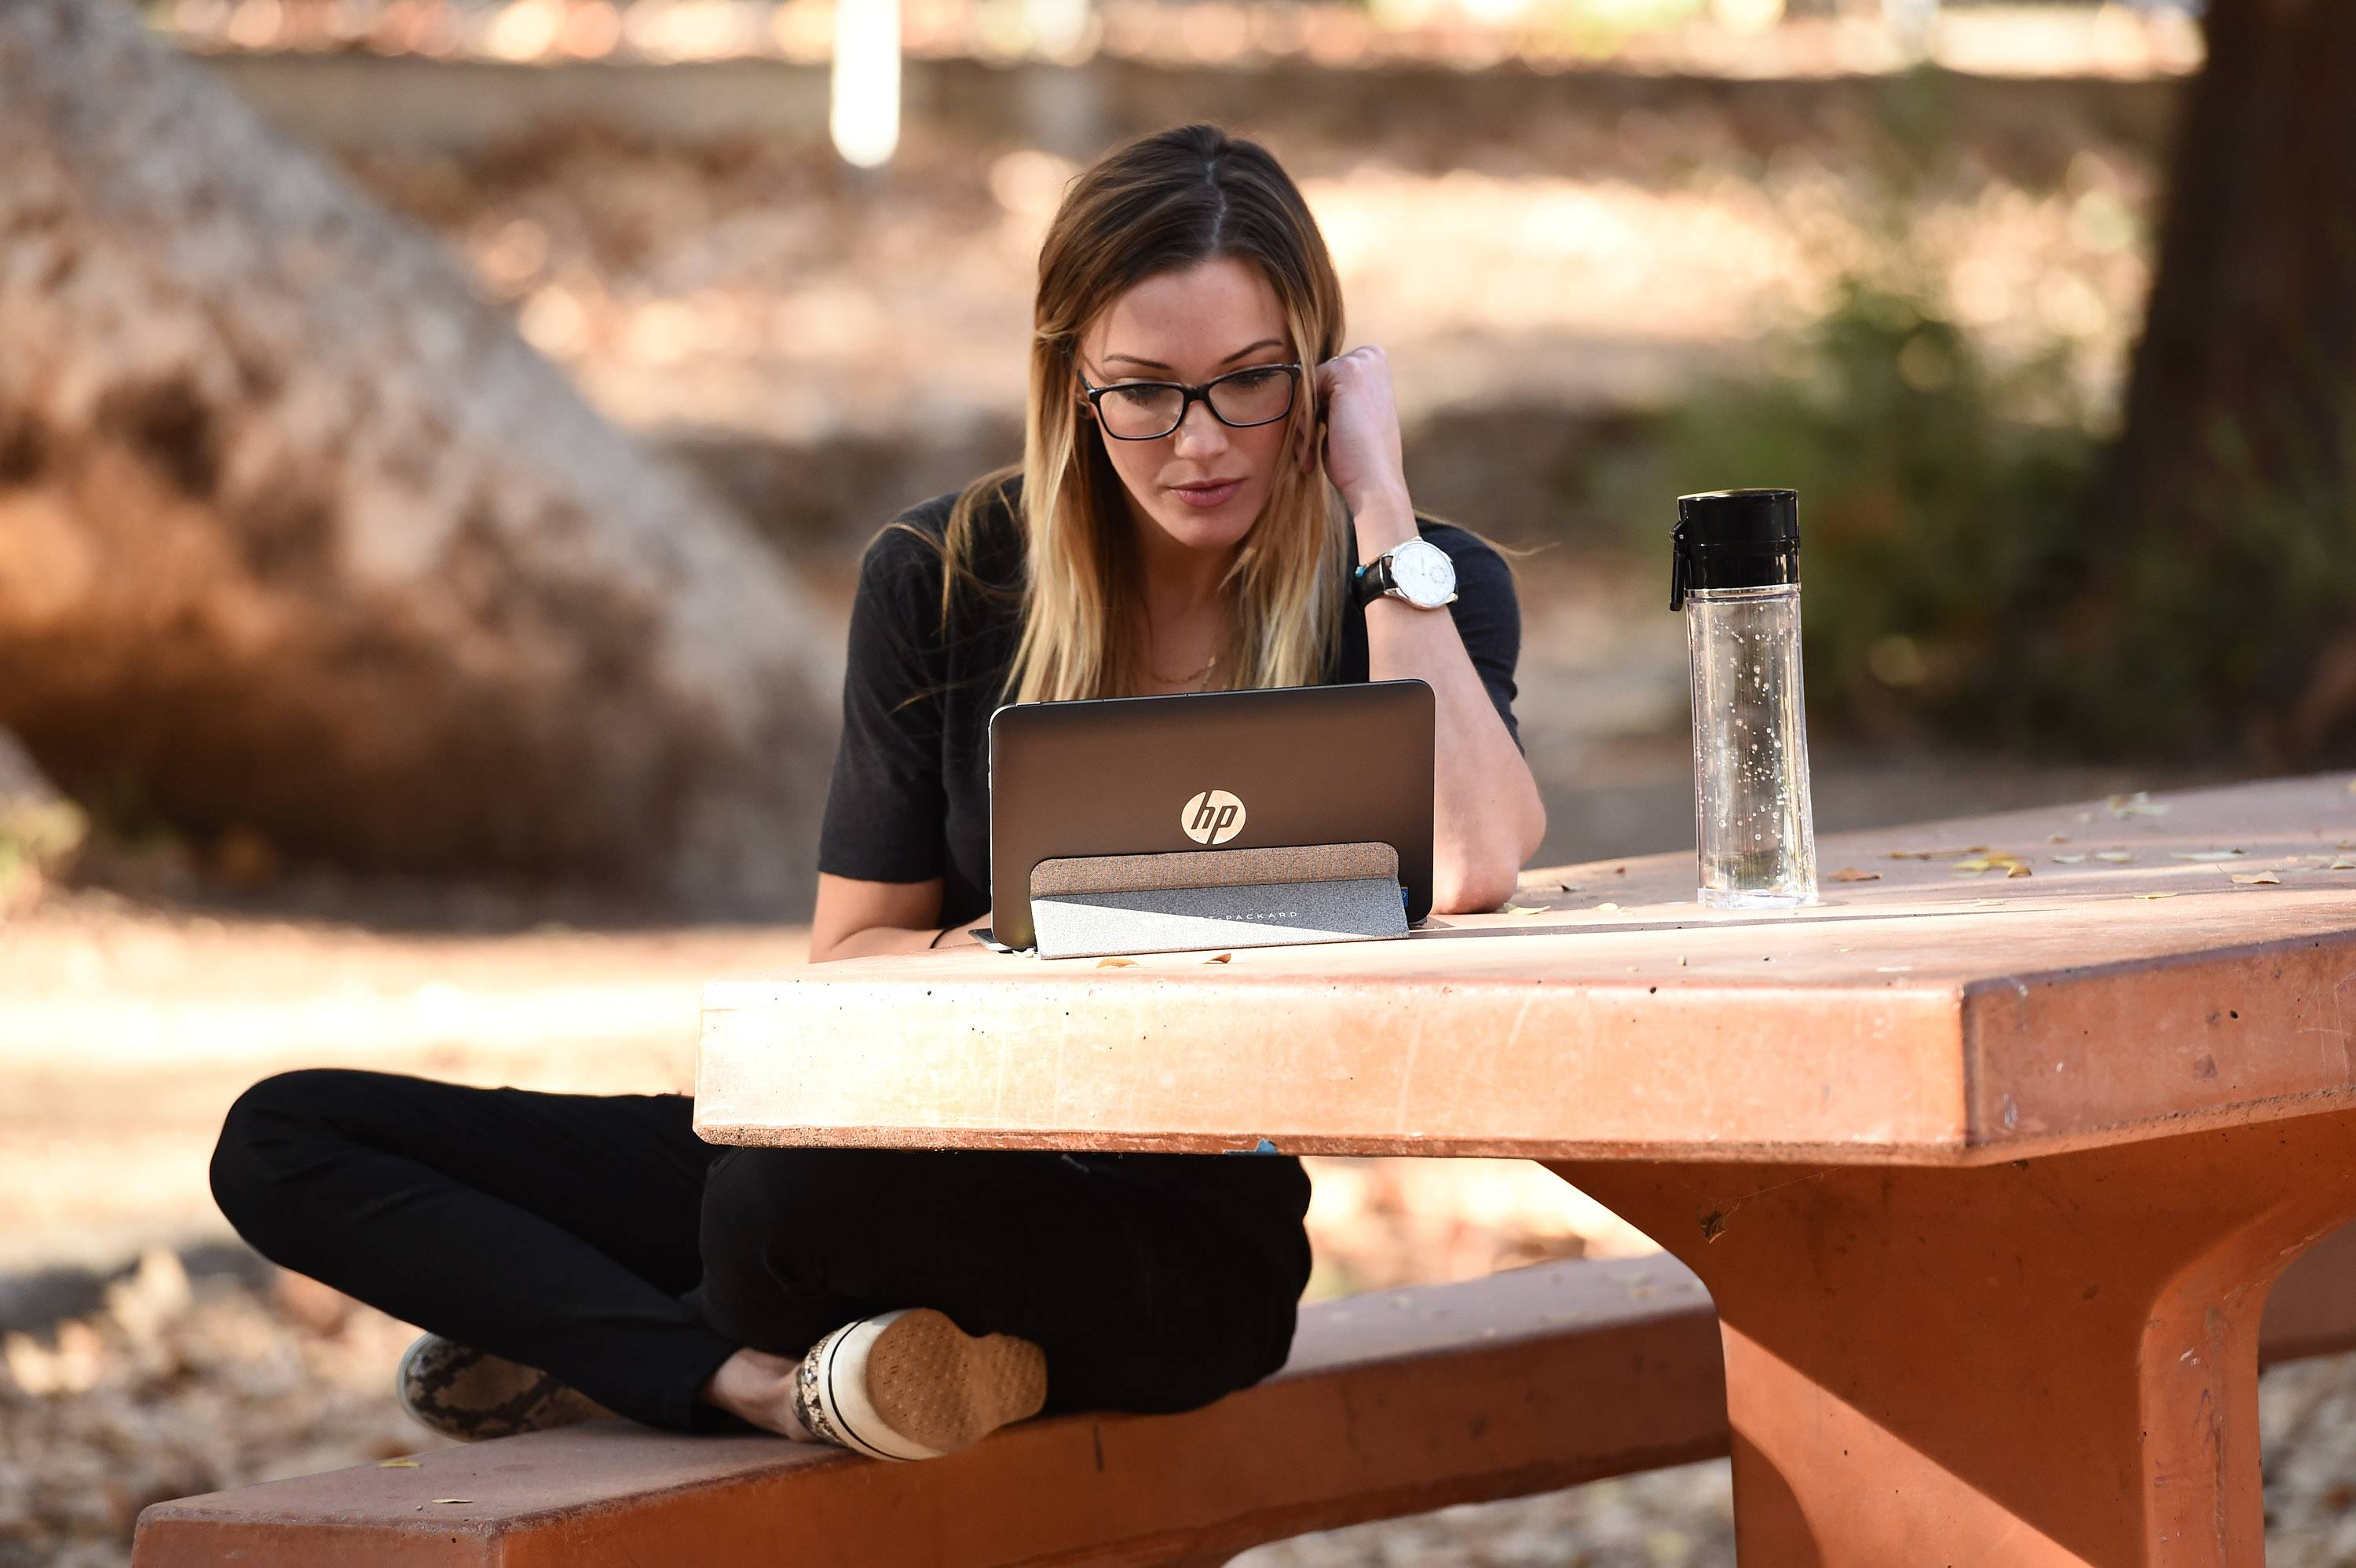 Arrow actress Katie Cassidy in L.A.'s Griffith Park. (Invision/AP Images)